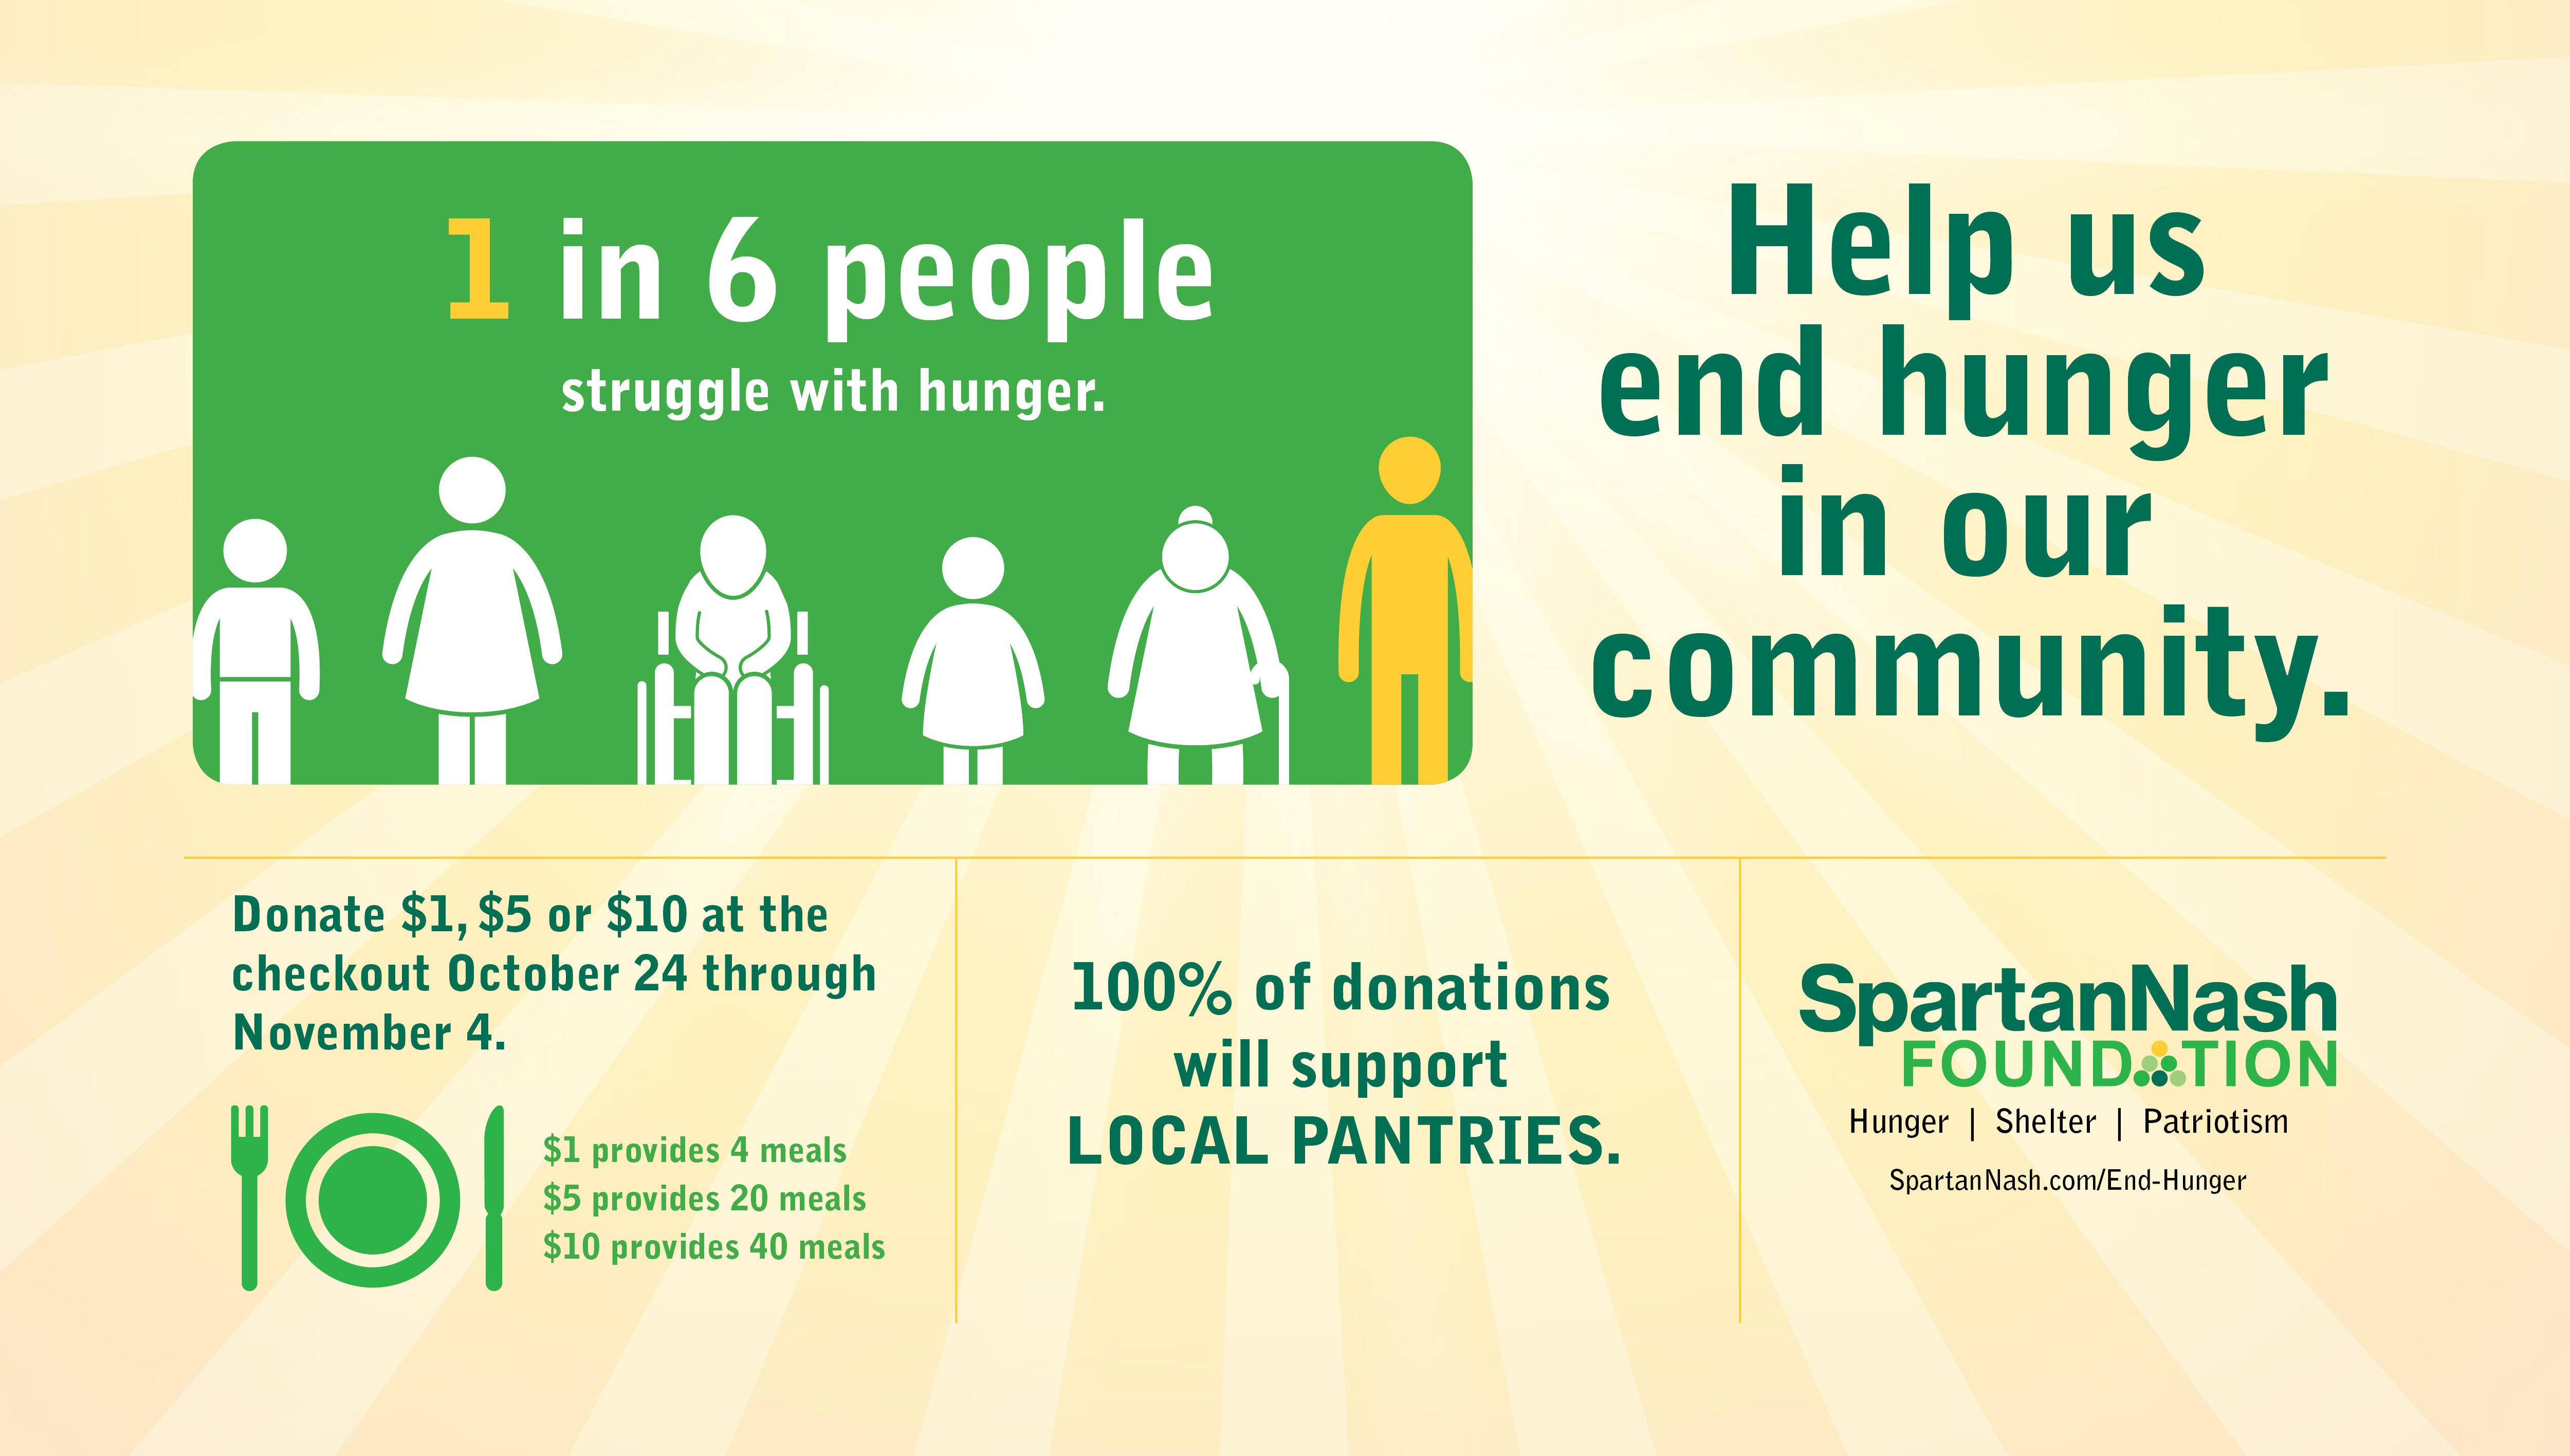 SpartanNash Foundation fight against hunger